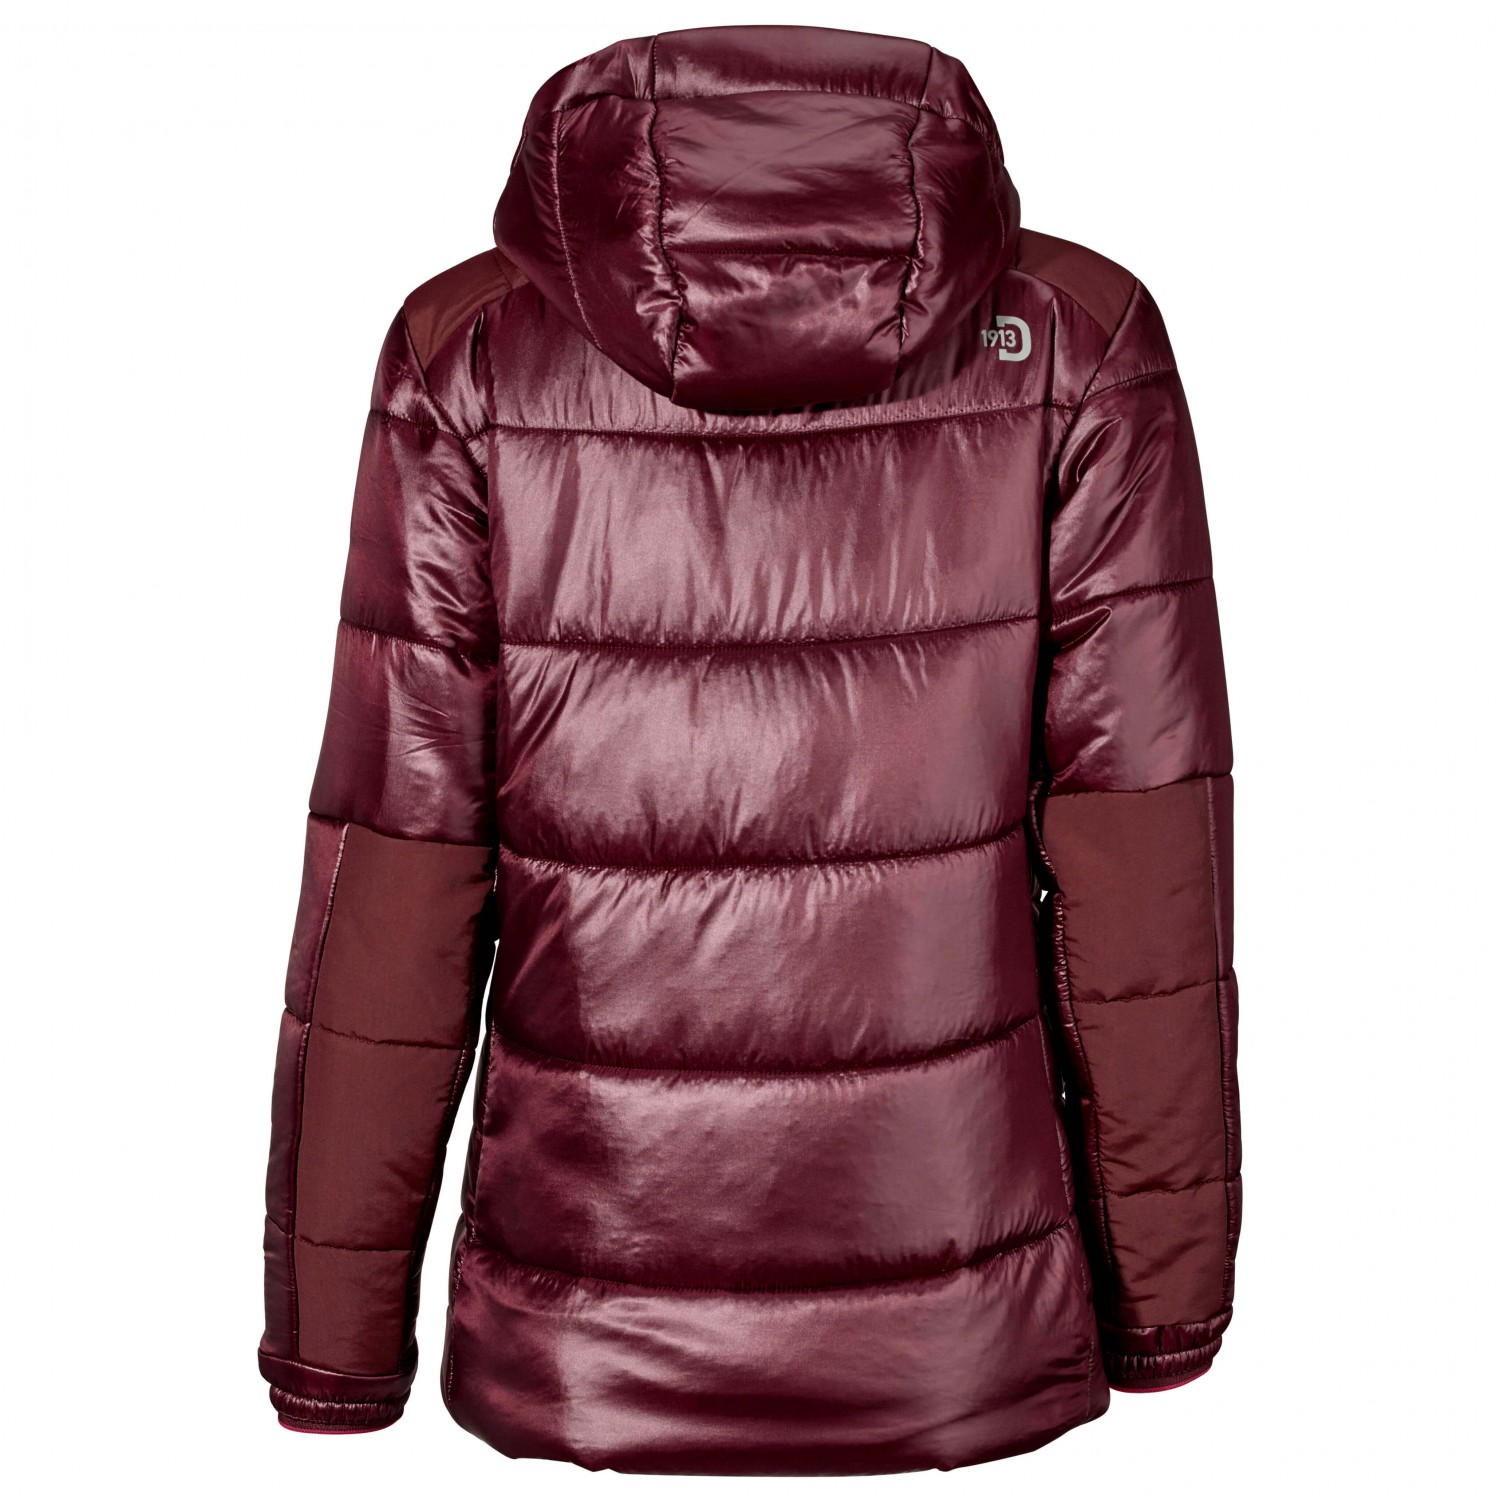 fee9c566 Didriksons Rory Jacket - Winter jacket Women's | Free EU Delivery ...